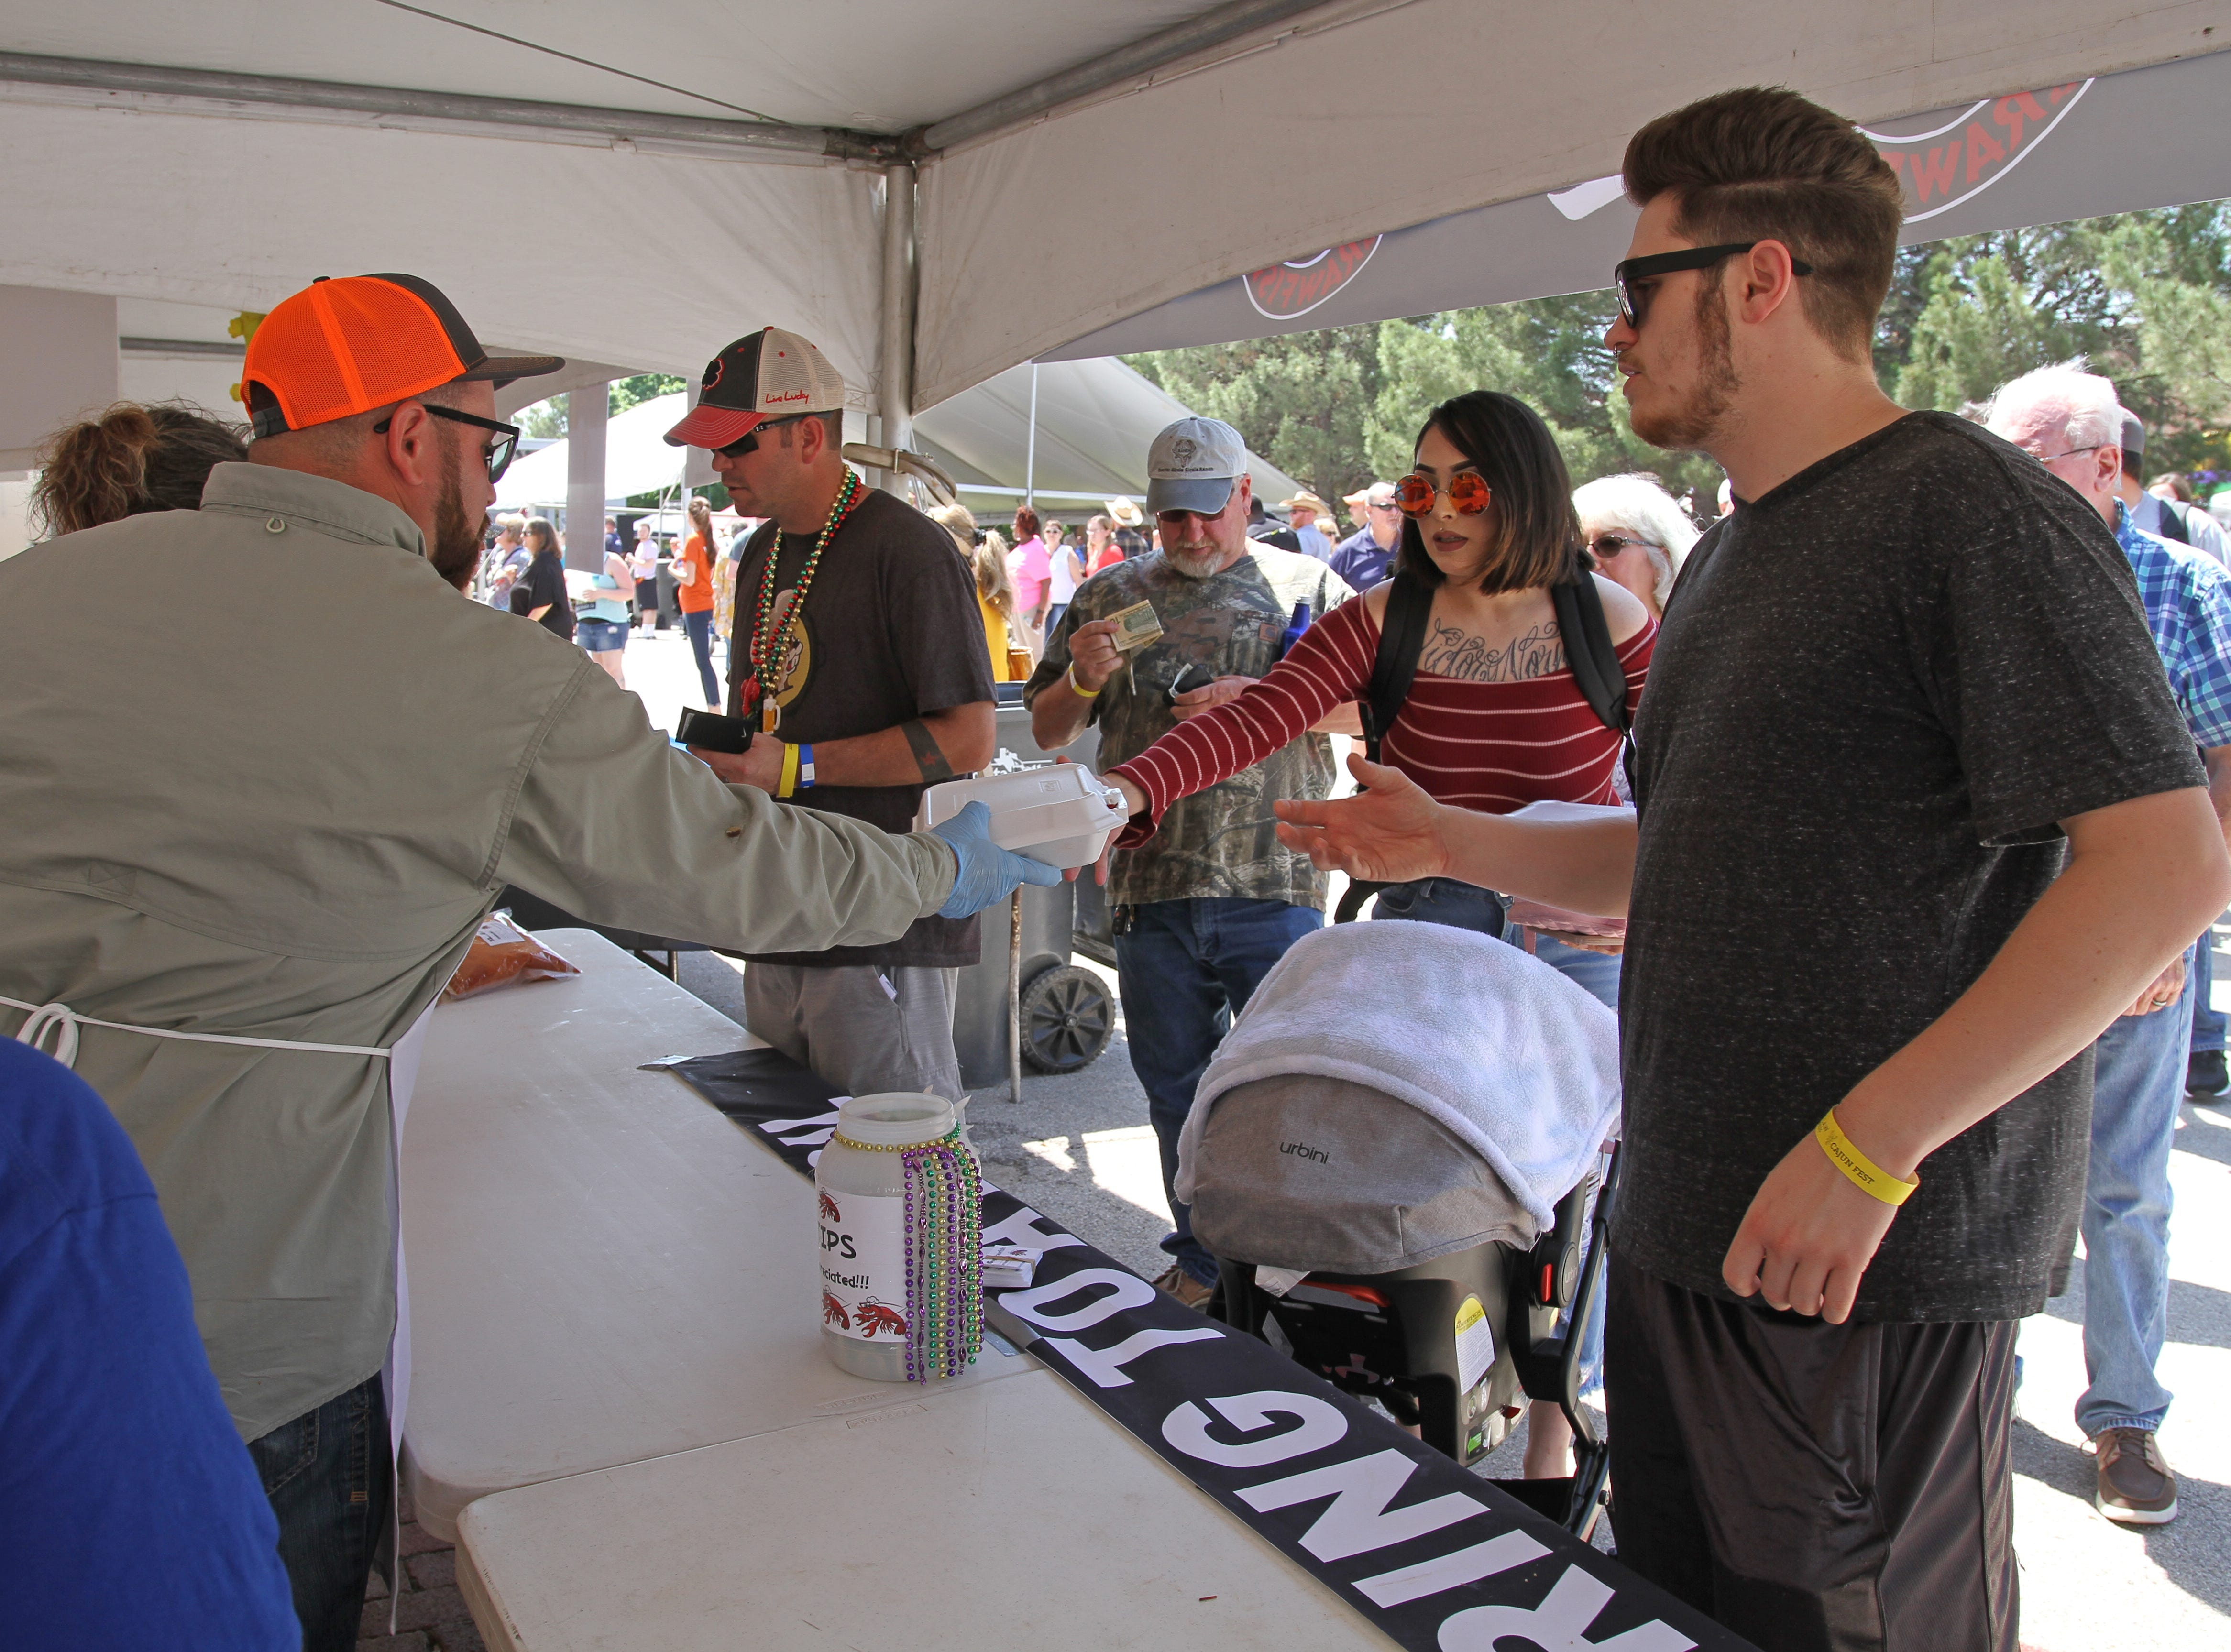 Poeple purchase boxes of crawfish at Cajun Fest Saturday, April 27, 2019, at 10th and Ohio downtown.